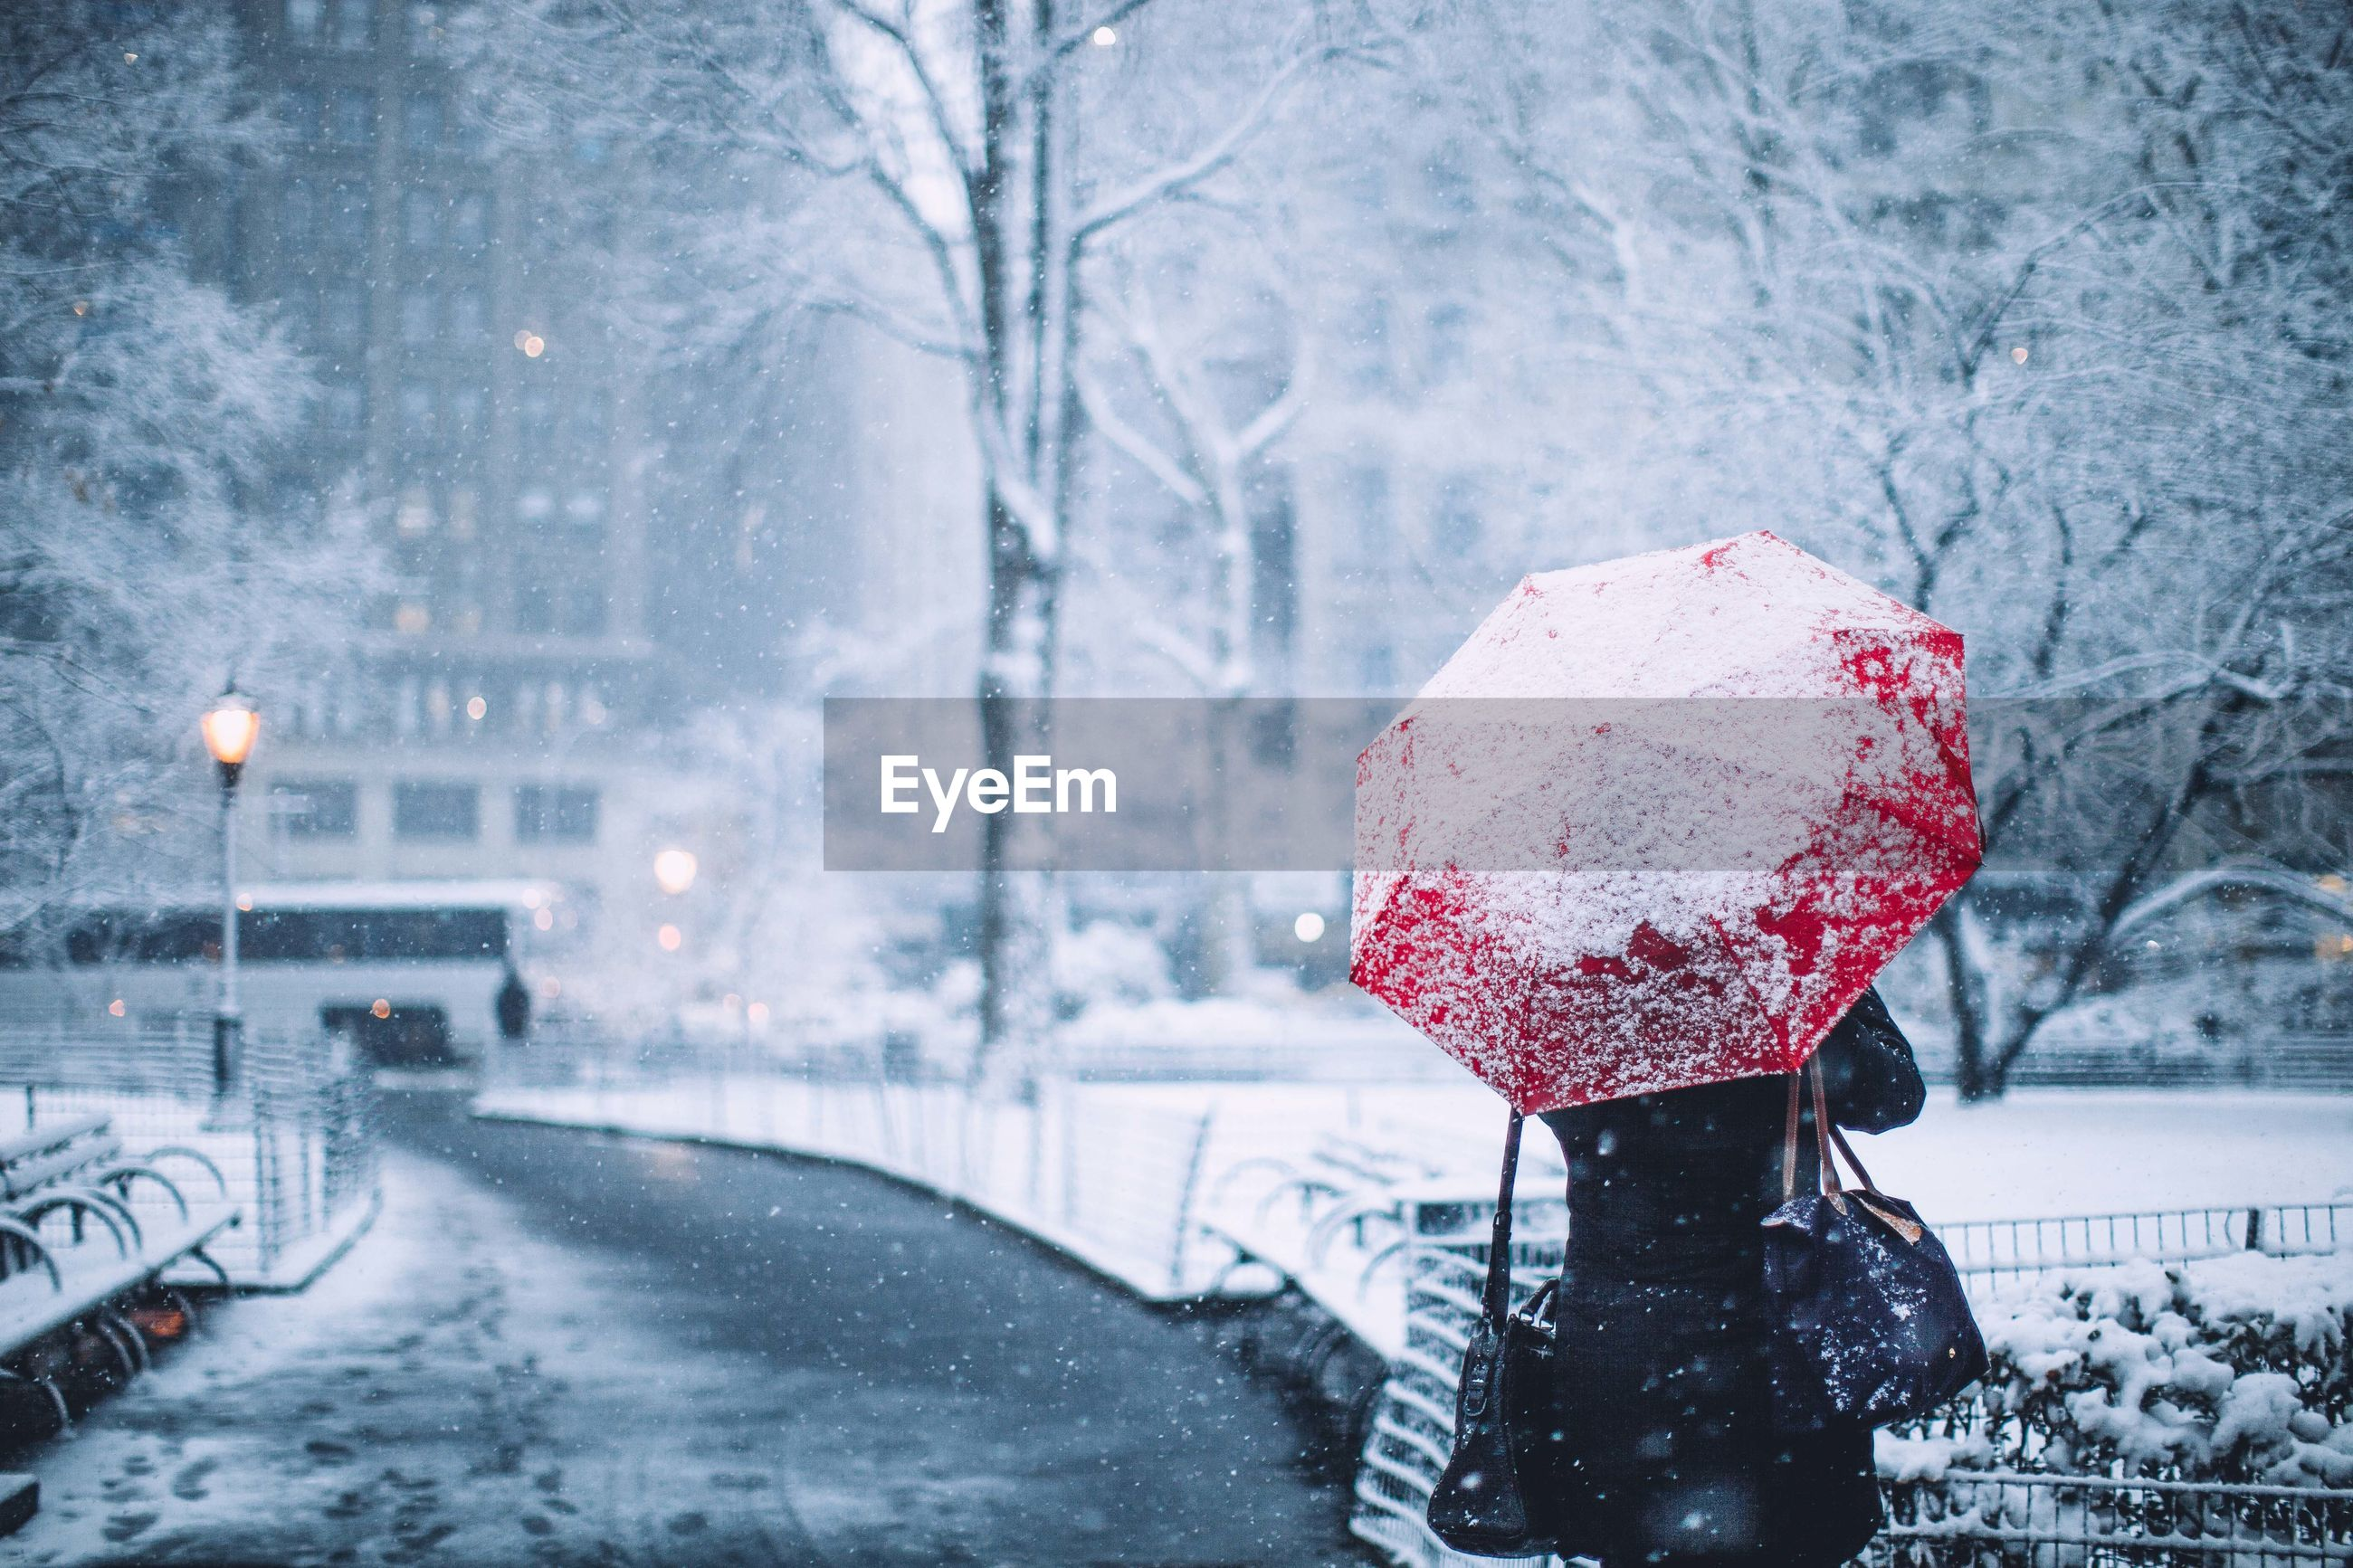 Rear view of woman with umbrella in snow